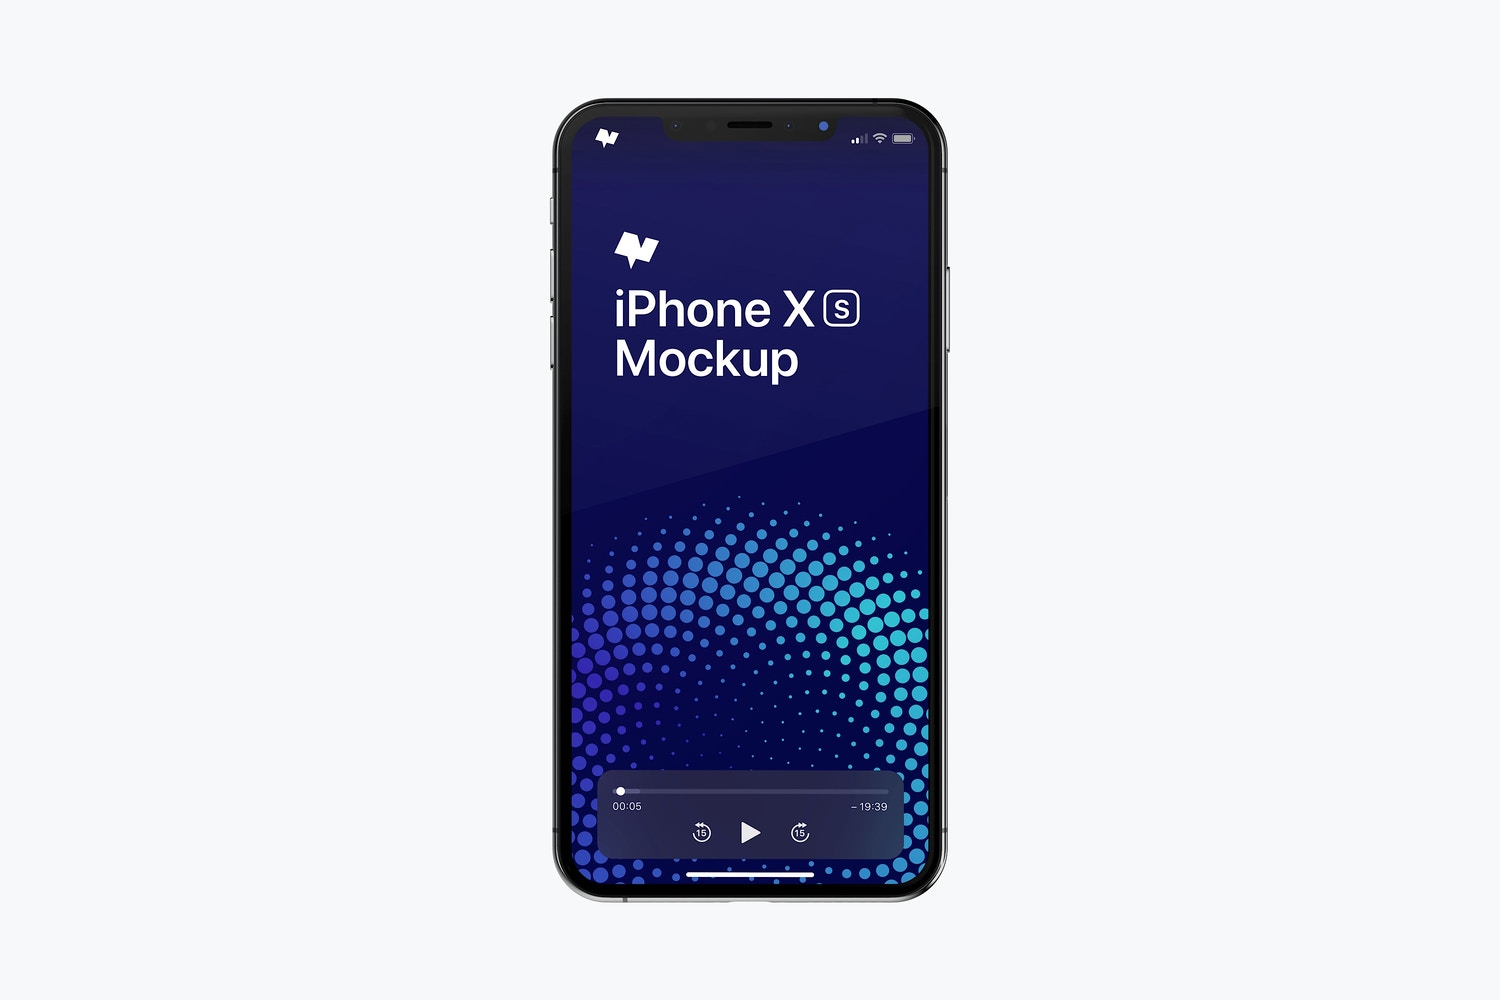 iPhone XS Max Mockup, Front View by Original Mockups on Original Mockups